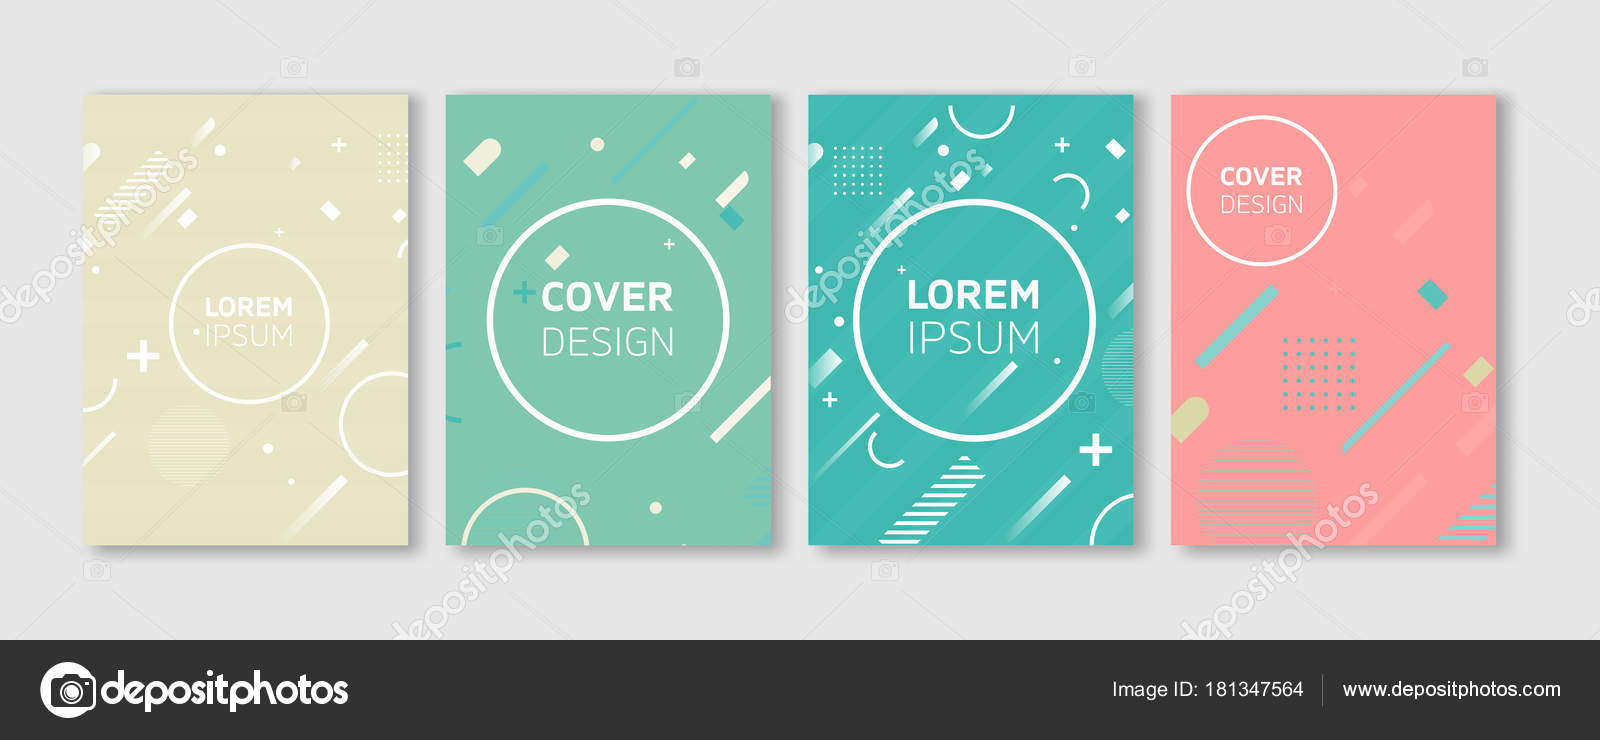 minimal vector covers design